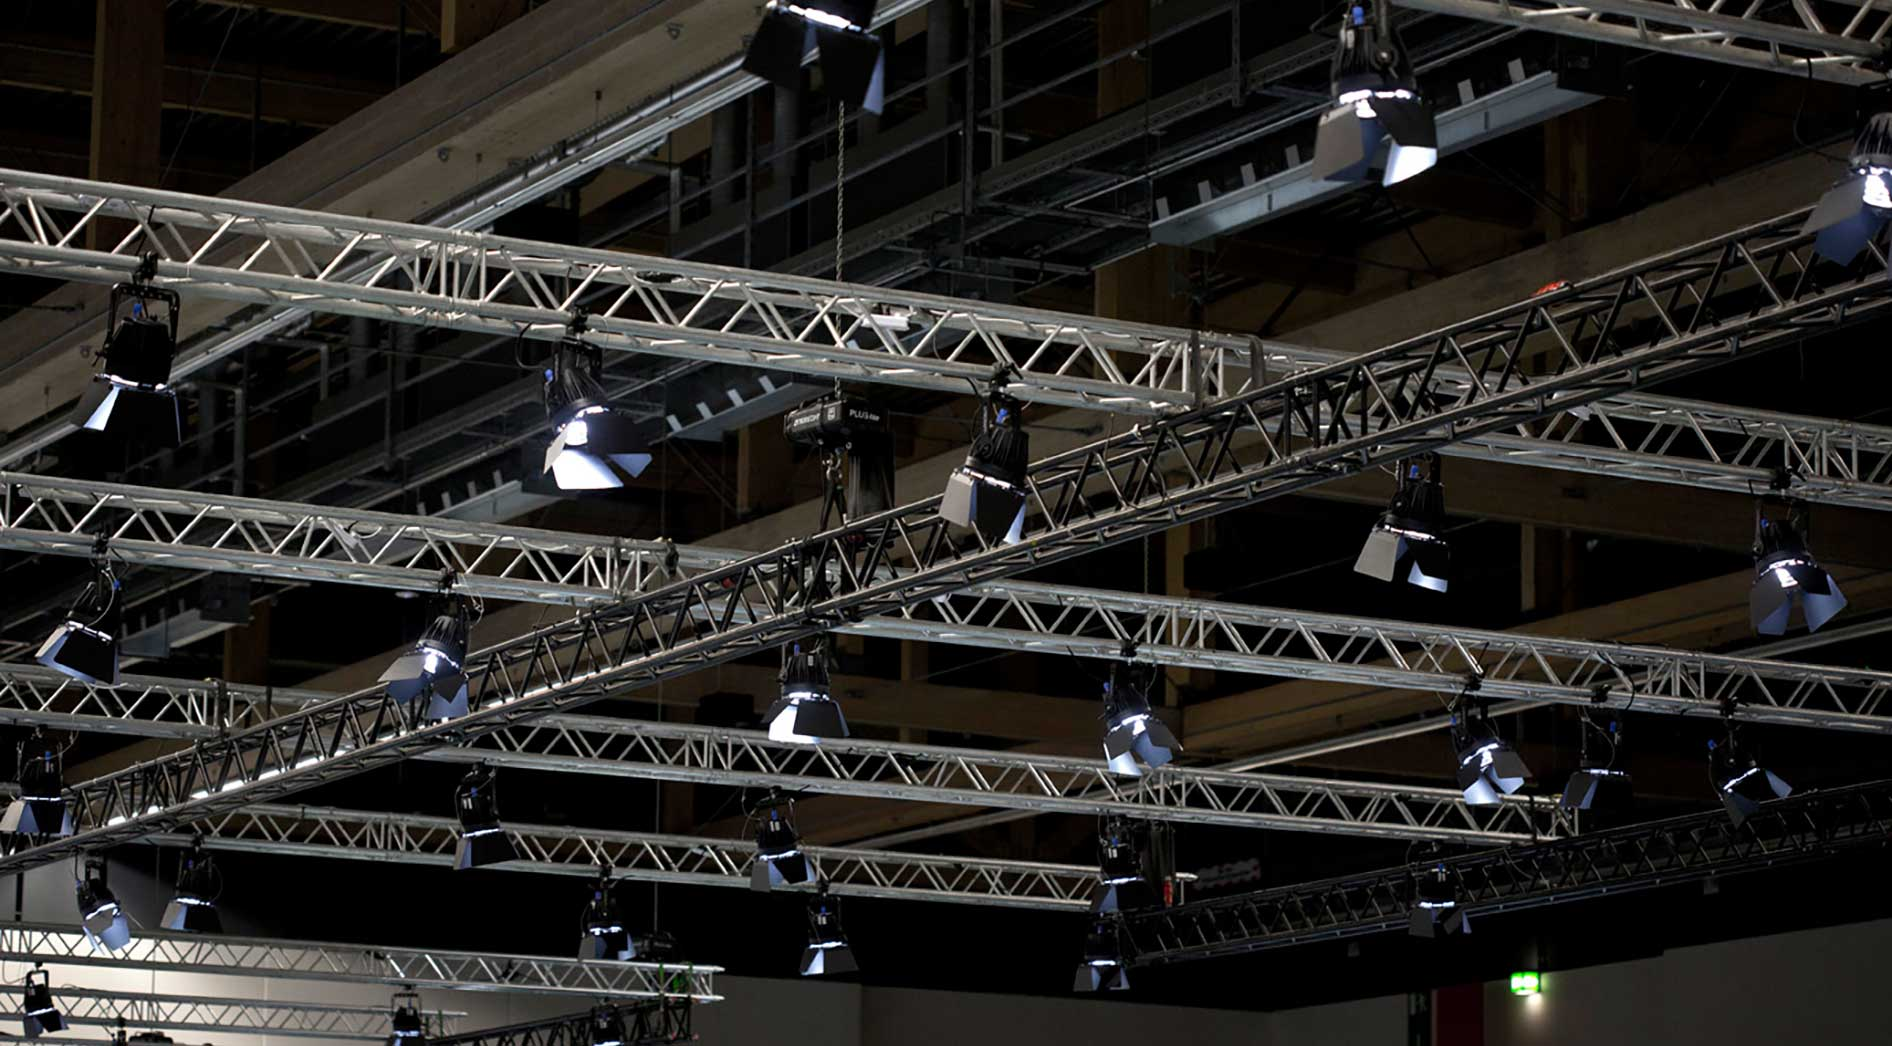 Stand Engineering at at the Frankfurt Exhibition Center: Spotlights from the ceiling